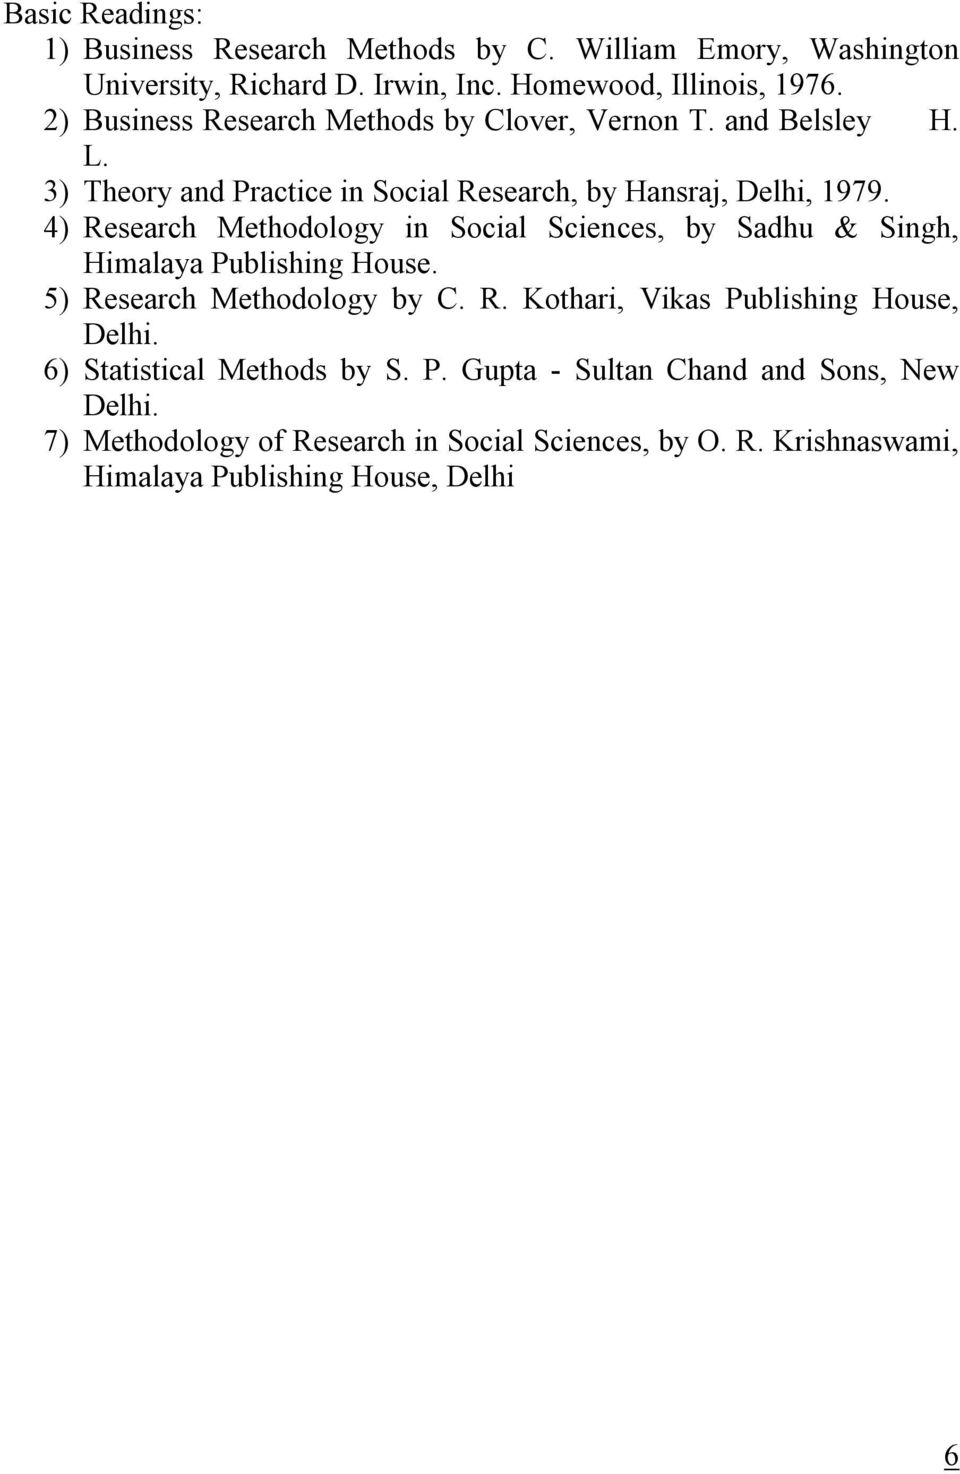 4) Research Methodology in Social Sciences, by Sadhu & Singh, Himalaya Publishing House. 5) Research Methodology by C. R. Kothari, Vikas Publishing House, Delhi.